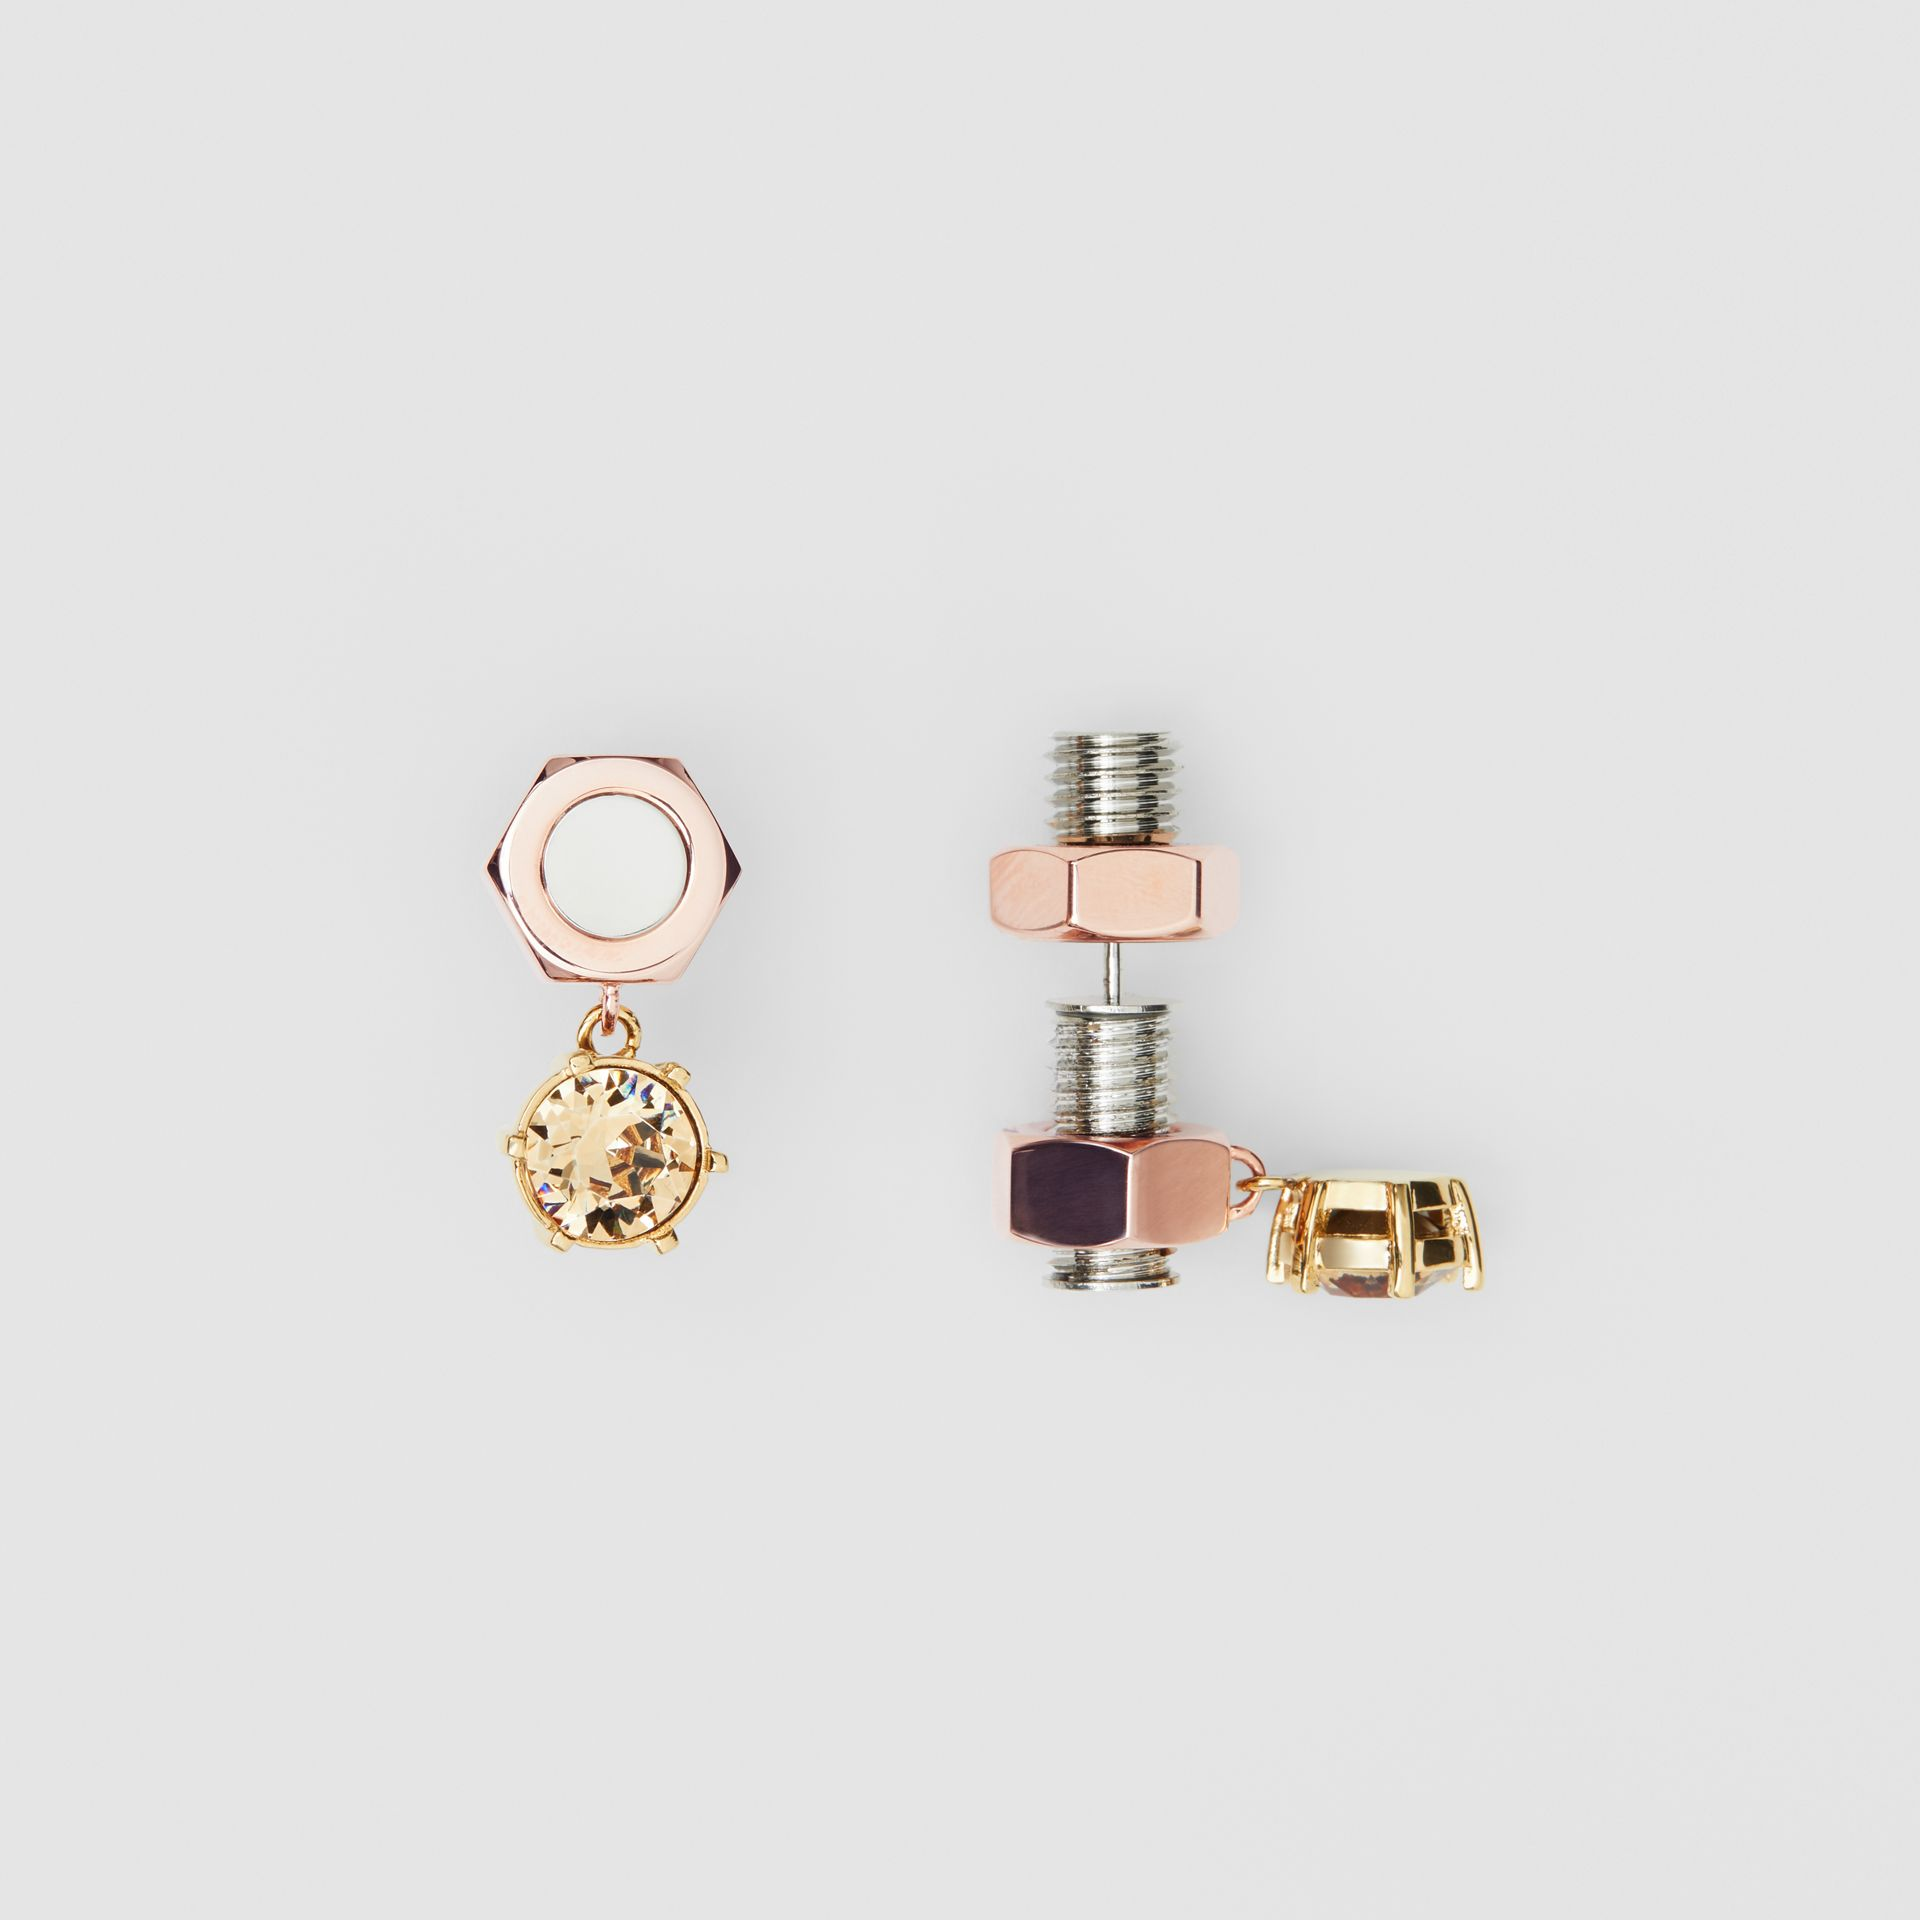 Crystal Charm Rose Gold-plated Nut and Bolt Earrings in Gold/palladium - Women | Burberry United States - gallery image 2